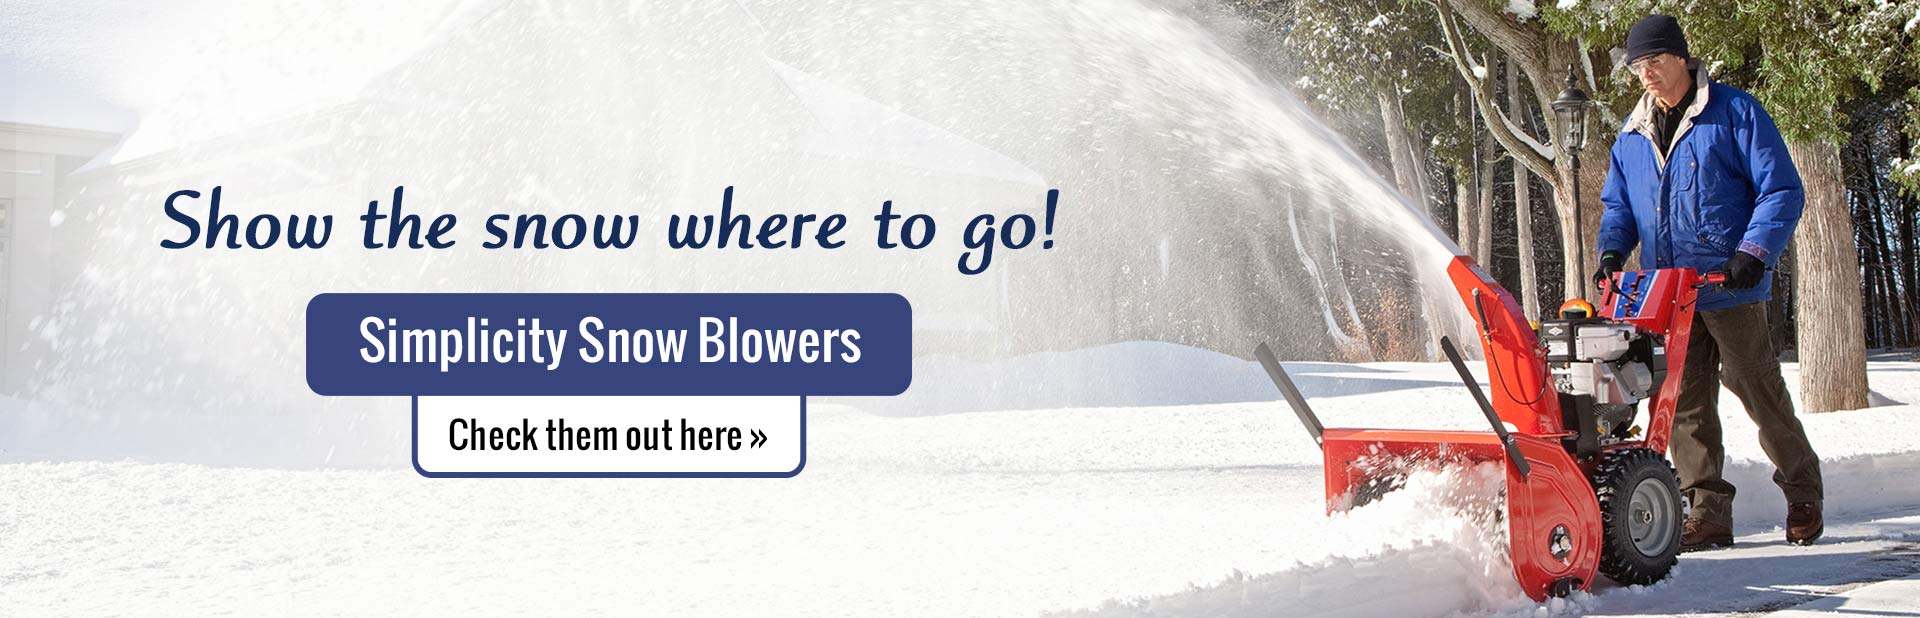 Show the snow where to go with Simplicity snow blowers! Click here to view our selection.